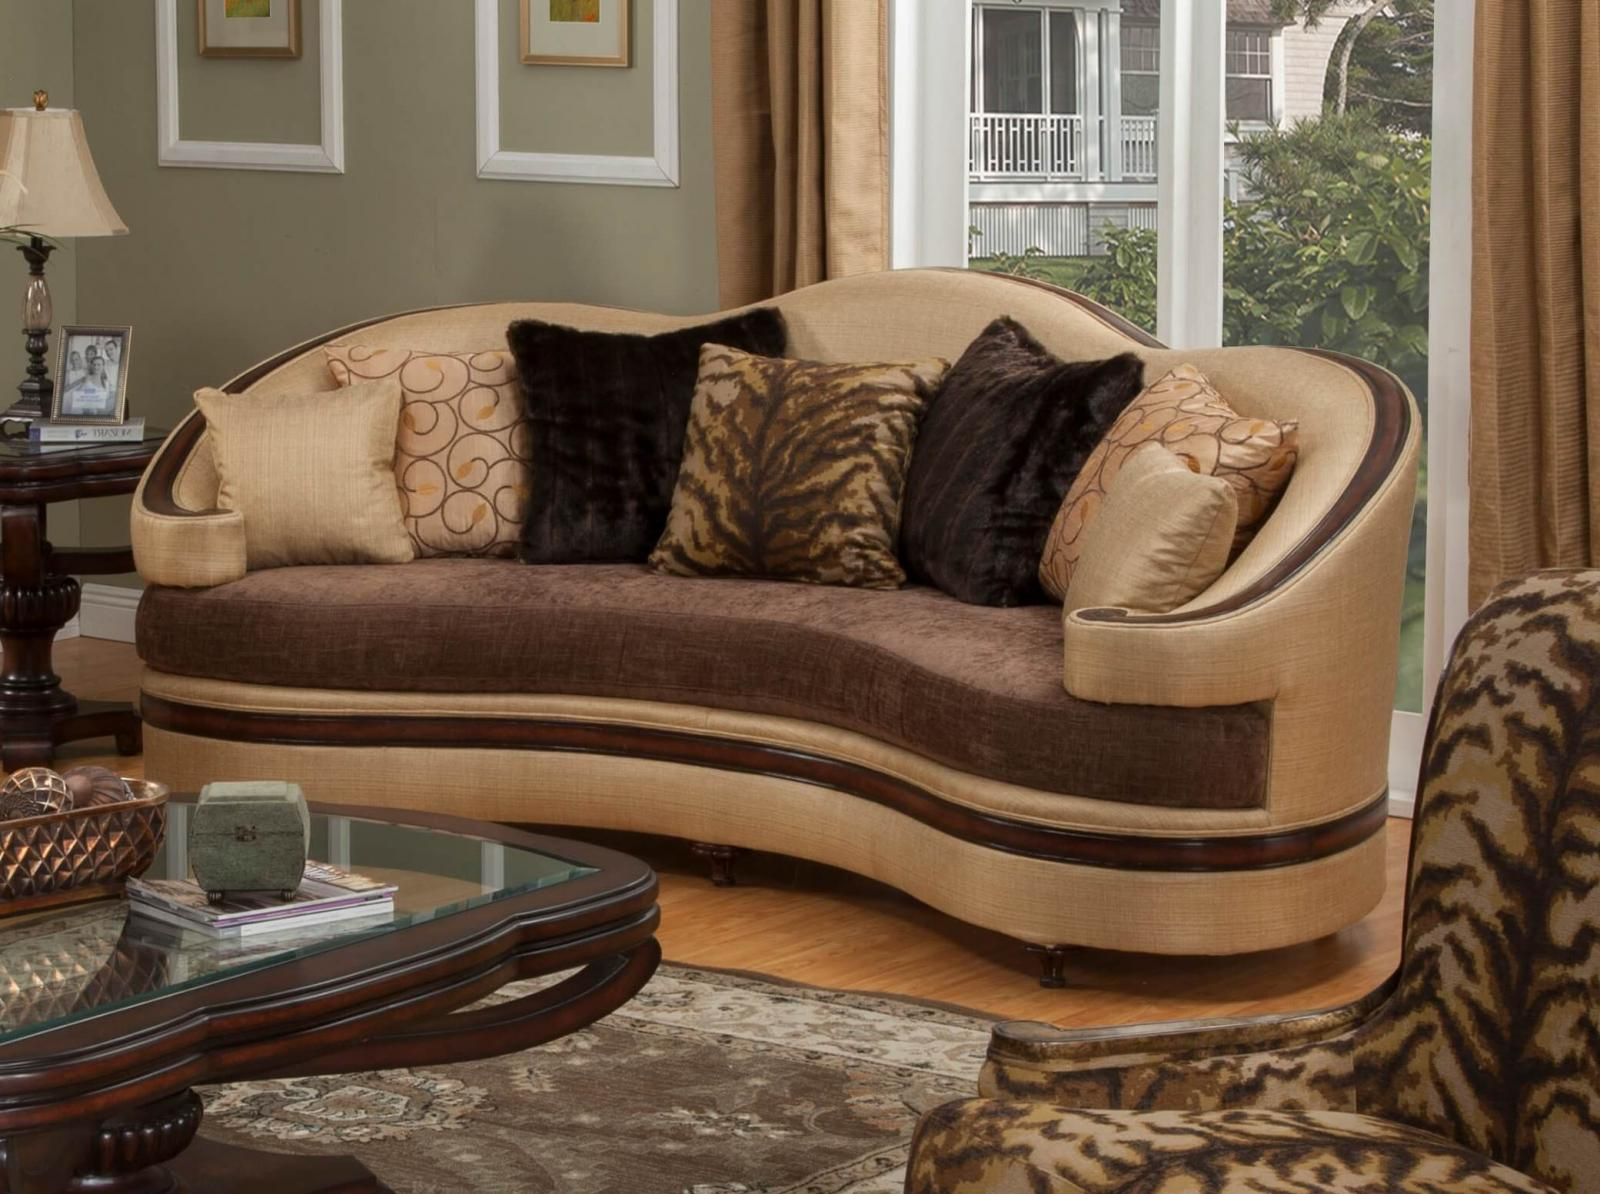 Bennetti Luxury Golden Beige Sofa Dark Brown Wood Emma BR Sofa Classic Traditional